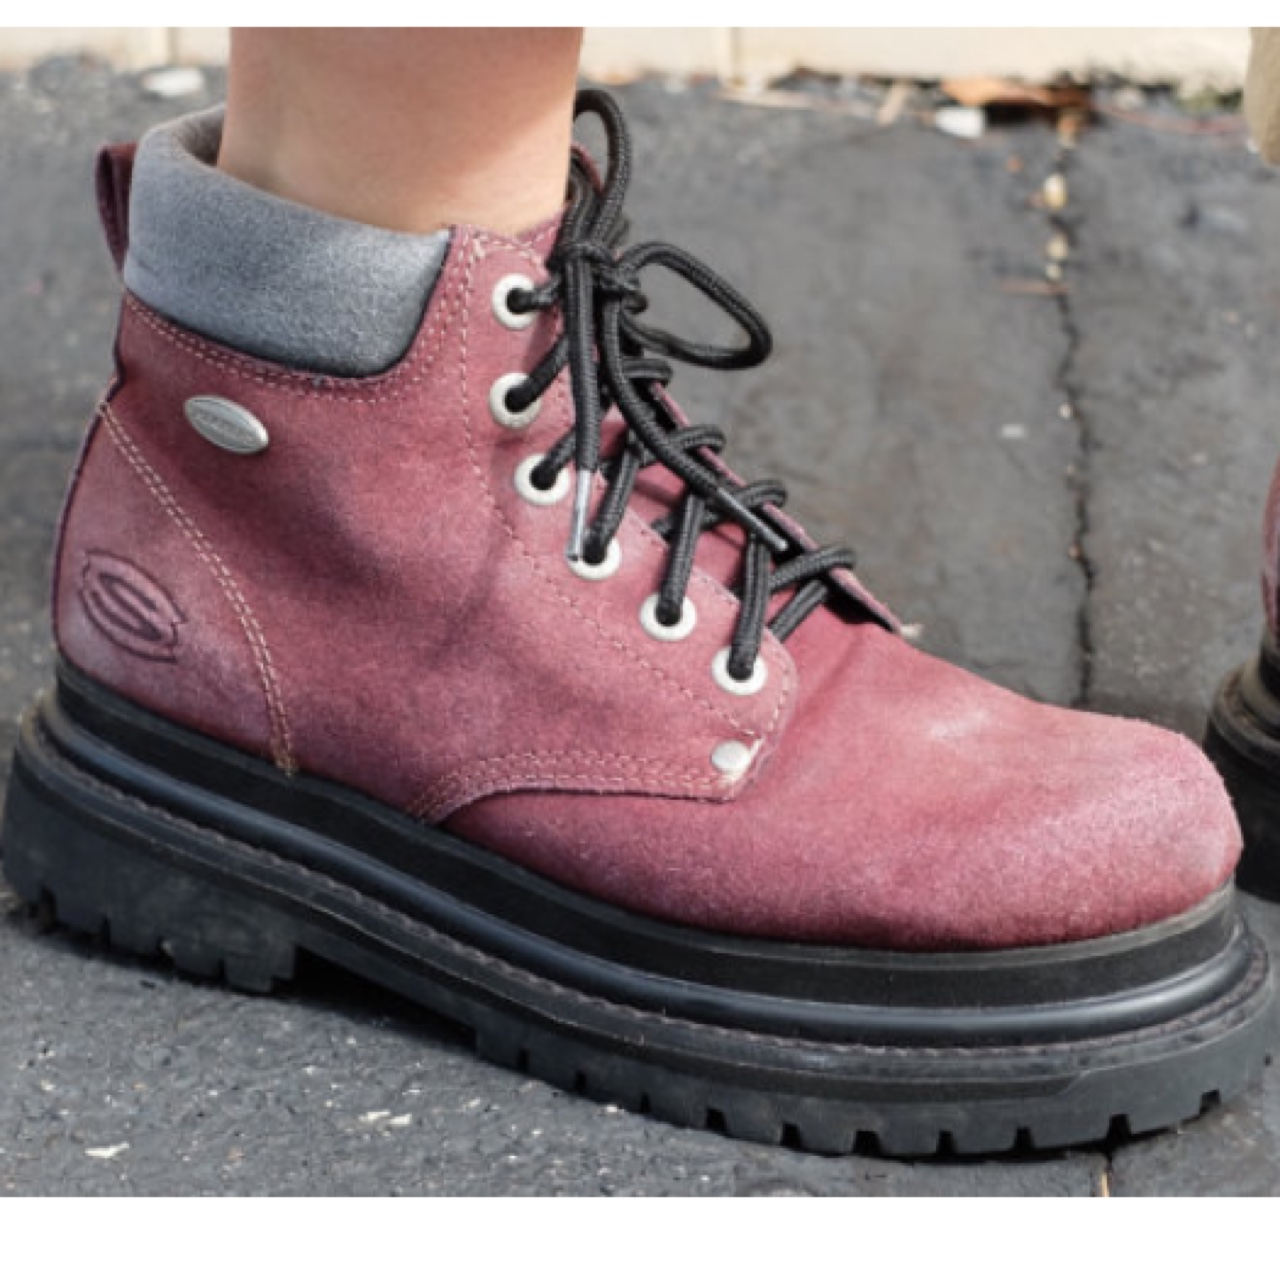 90s Vintage Skechers Boots -really